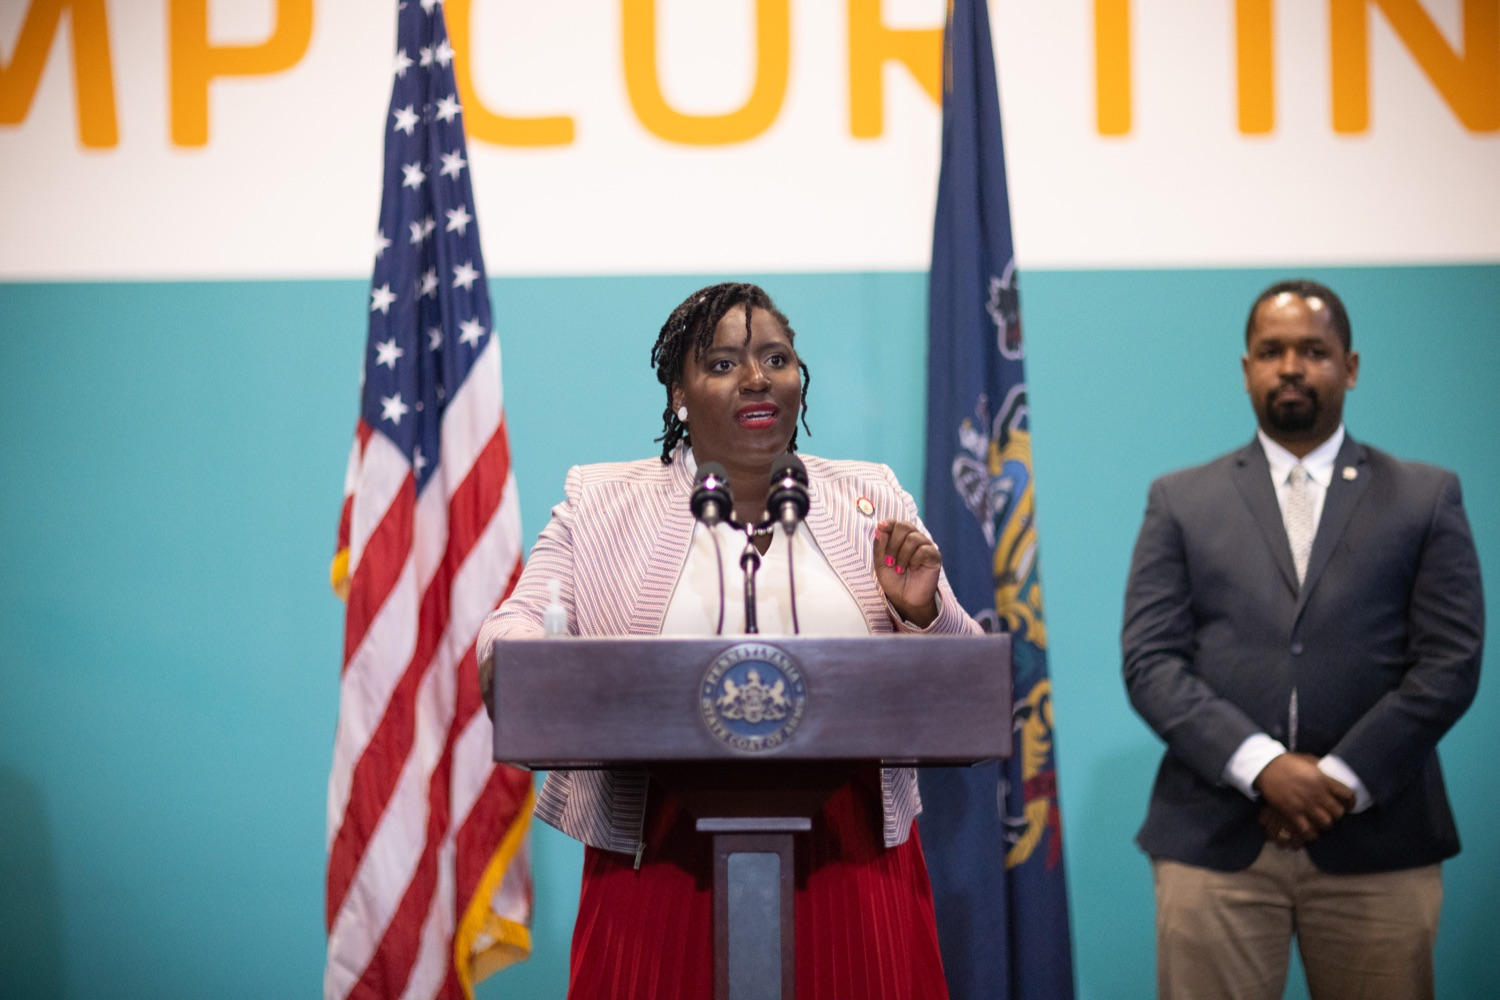 """<a href=""""https://filesource.wostreaming.net/commonwealthofpa/photo/18815_gov_voterRights_dz_011.jpg"""" target=""""_blank"""">⇣Download Photo<br></a>House Democratic Caucus Leader Joanna McClinton, Representative from Delaware and Philadelphia Counties speaking with the press.With some politicians spreading lies about our elections to divide us, Governor Tom Wolf today vowed to protect the freedom to vote and oppose legislation that would create barriers to voting and silence the voices of some Pennsylvanians. These are the same lies that led directly to the appalling assault on our U.S. Capitol and our democracy on January 6, and now, just a few short months later, the same people who fomented, encouraged, and joined that mob are again emerging to undermine the fabric of our nation.   Harrisburg, PA  June 9, 2021"""